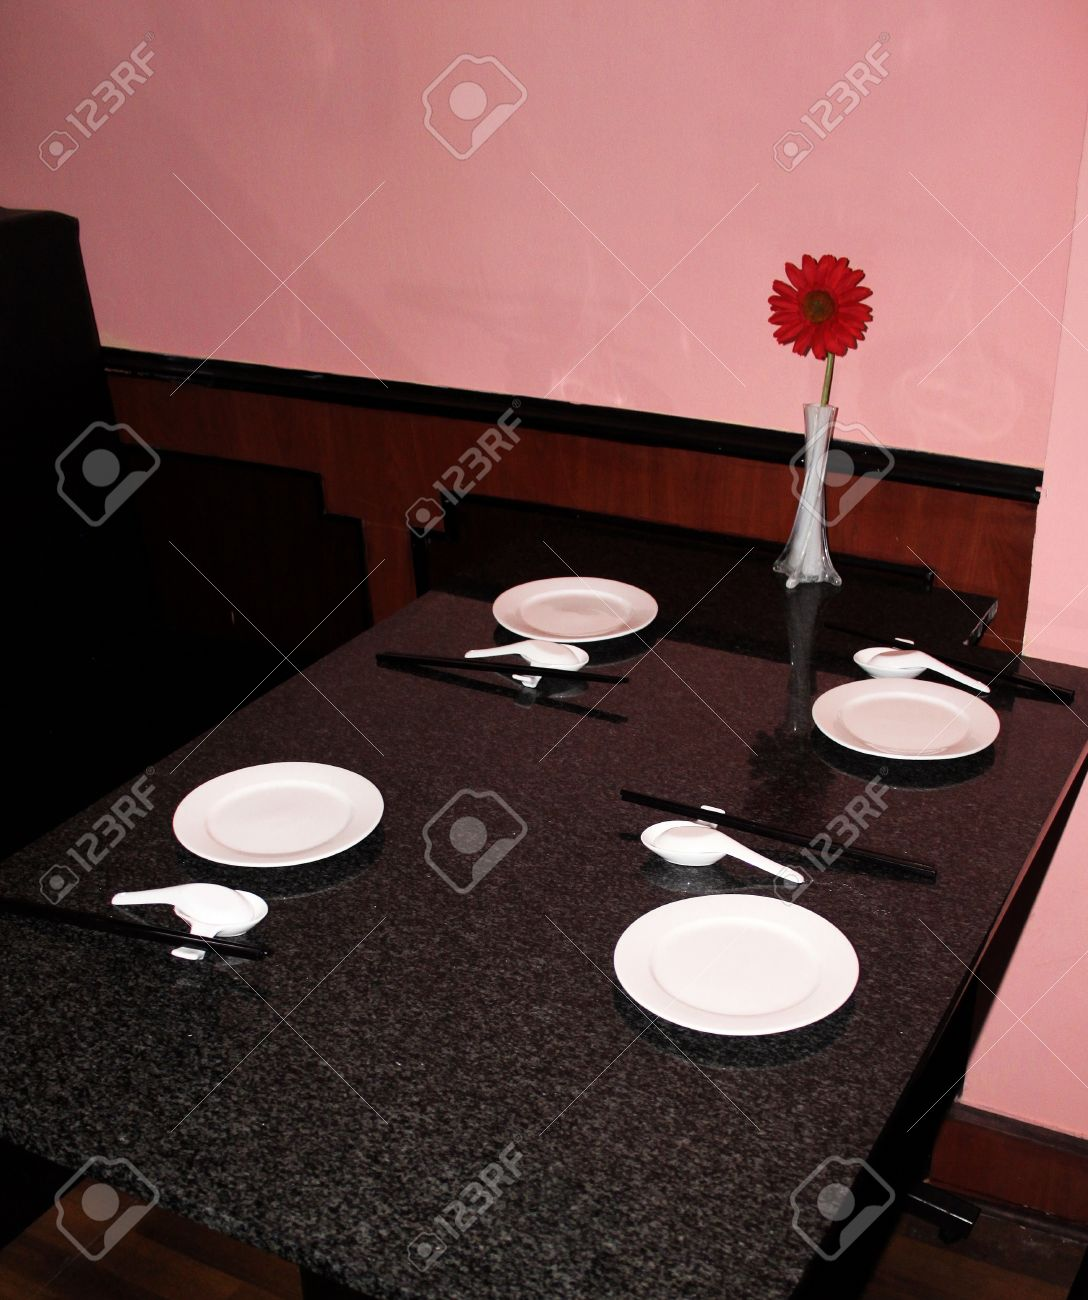 Simple restaurant table setting - Simple Table Setting At A Chinese Restaurant On Marble Table Top Stock Photo 14017658